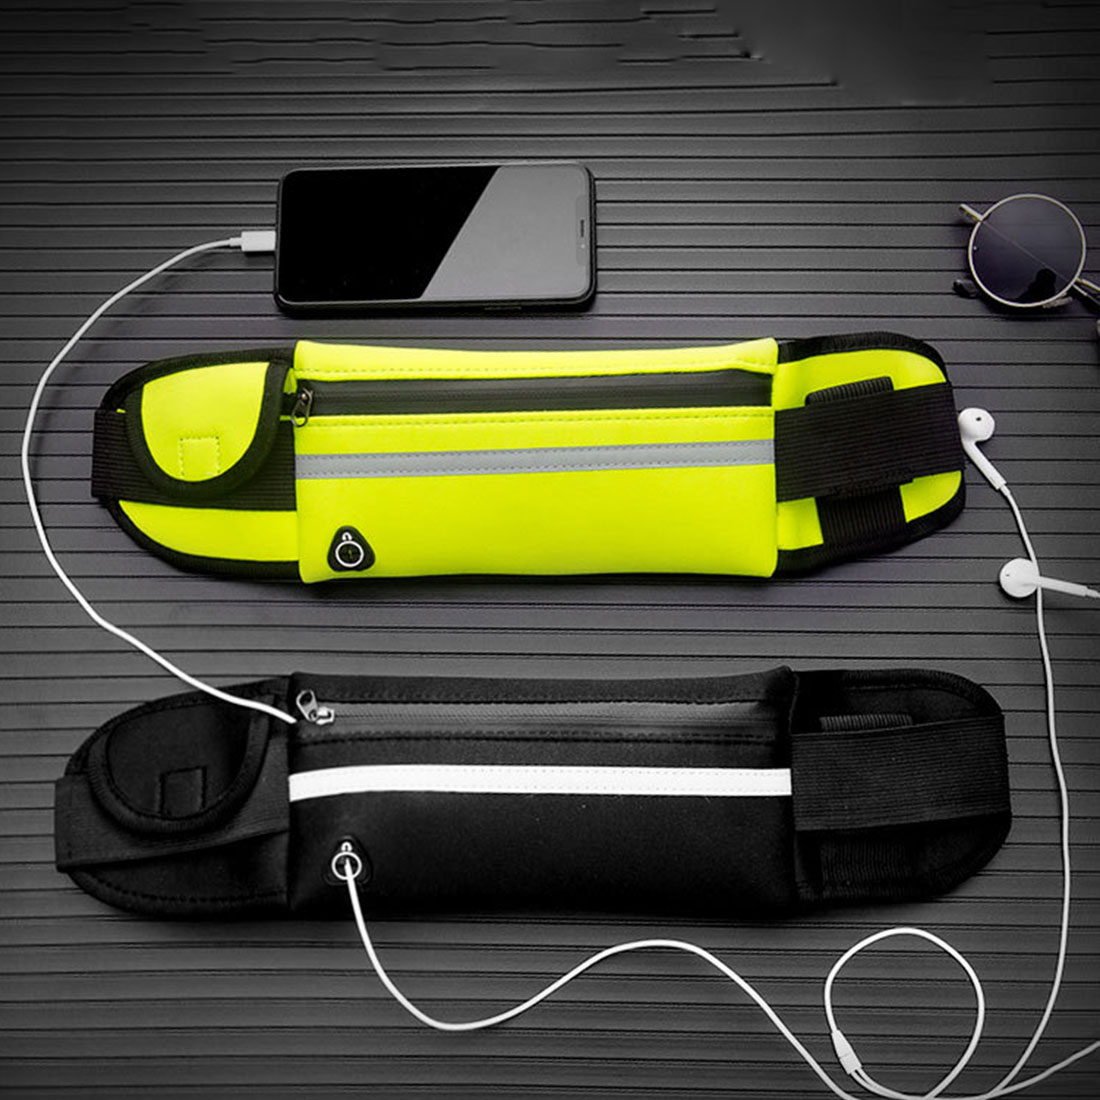 New Running Waist Bag Waterproof Phone Container Jogging Hiking Belt Belly Bag Women Gym Fitness Bag Lady Sport Accessories 11